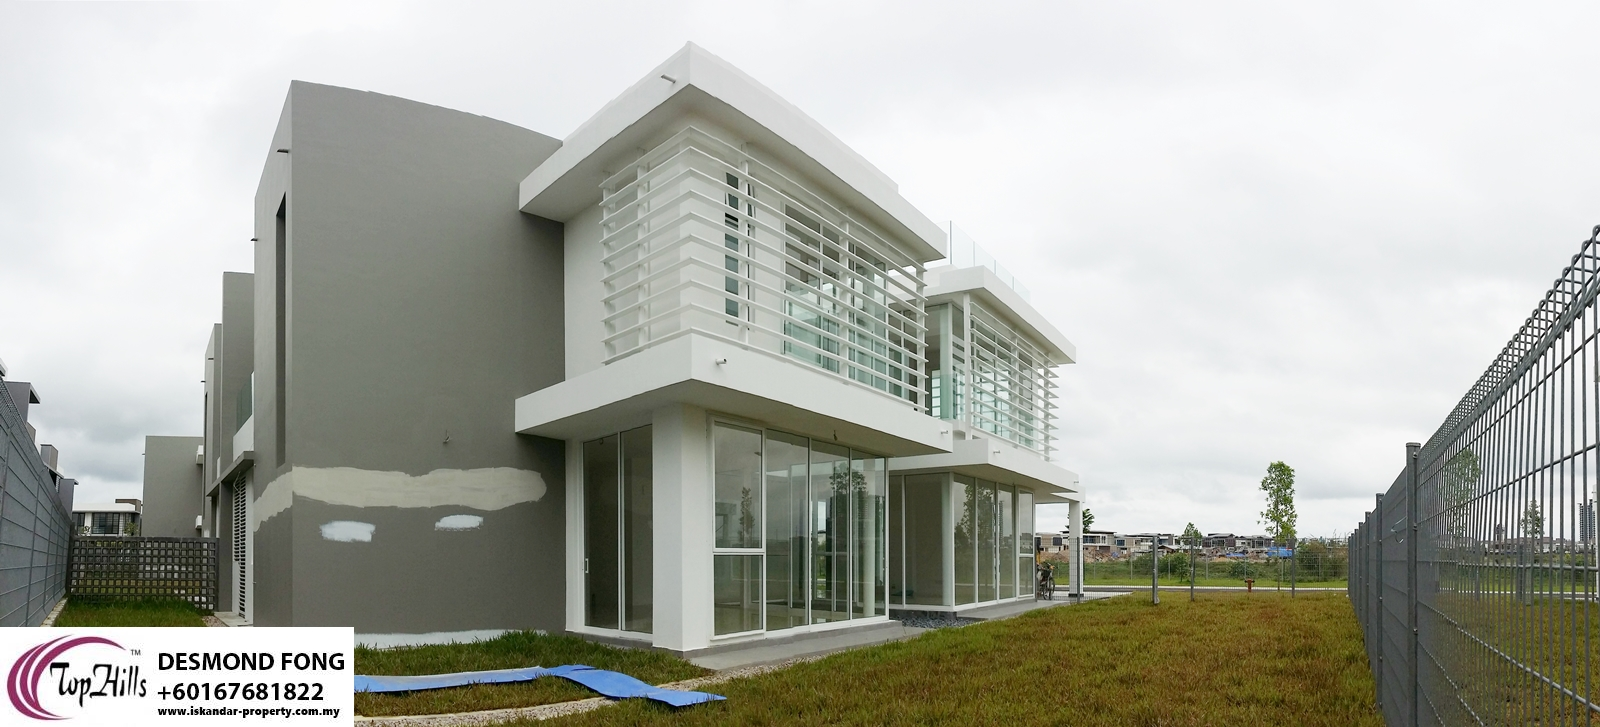 2 STOREY MODERN DESIGN CORNER SEMI DETACHED HOME